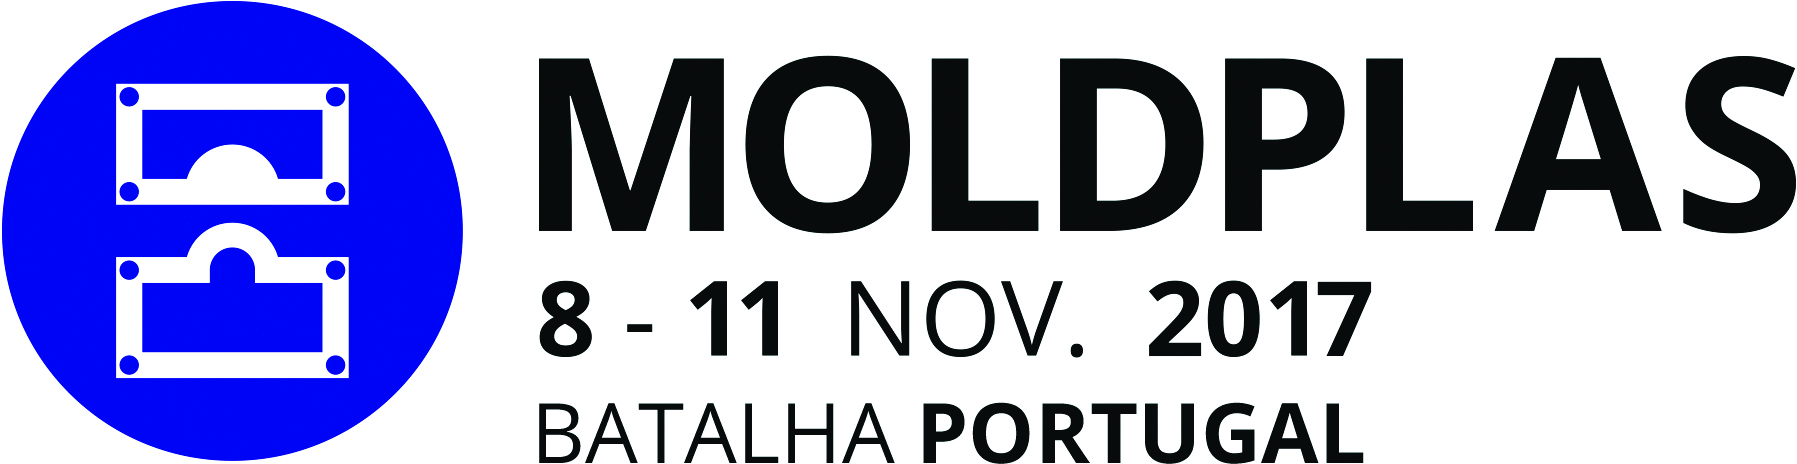 Moldplas 2017 molds industry in Portugal